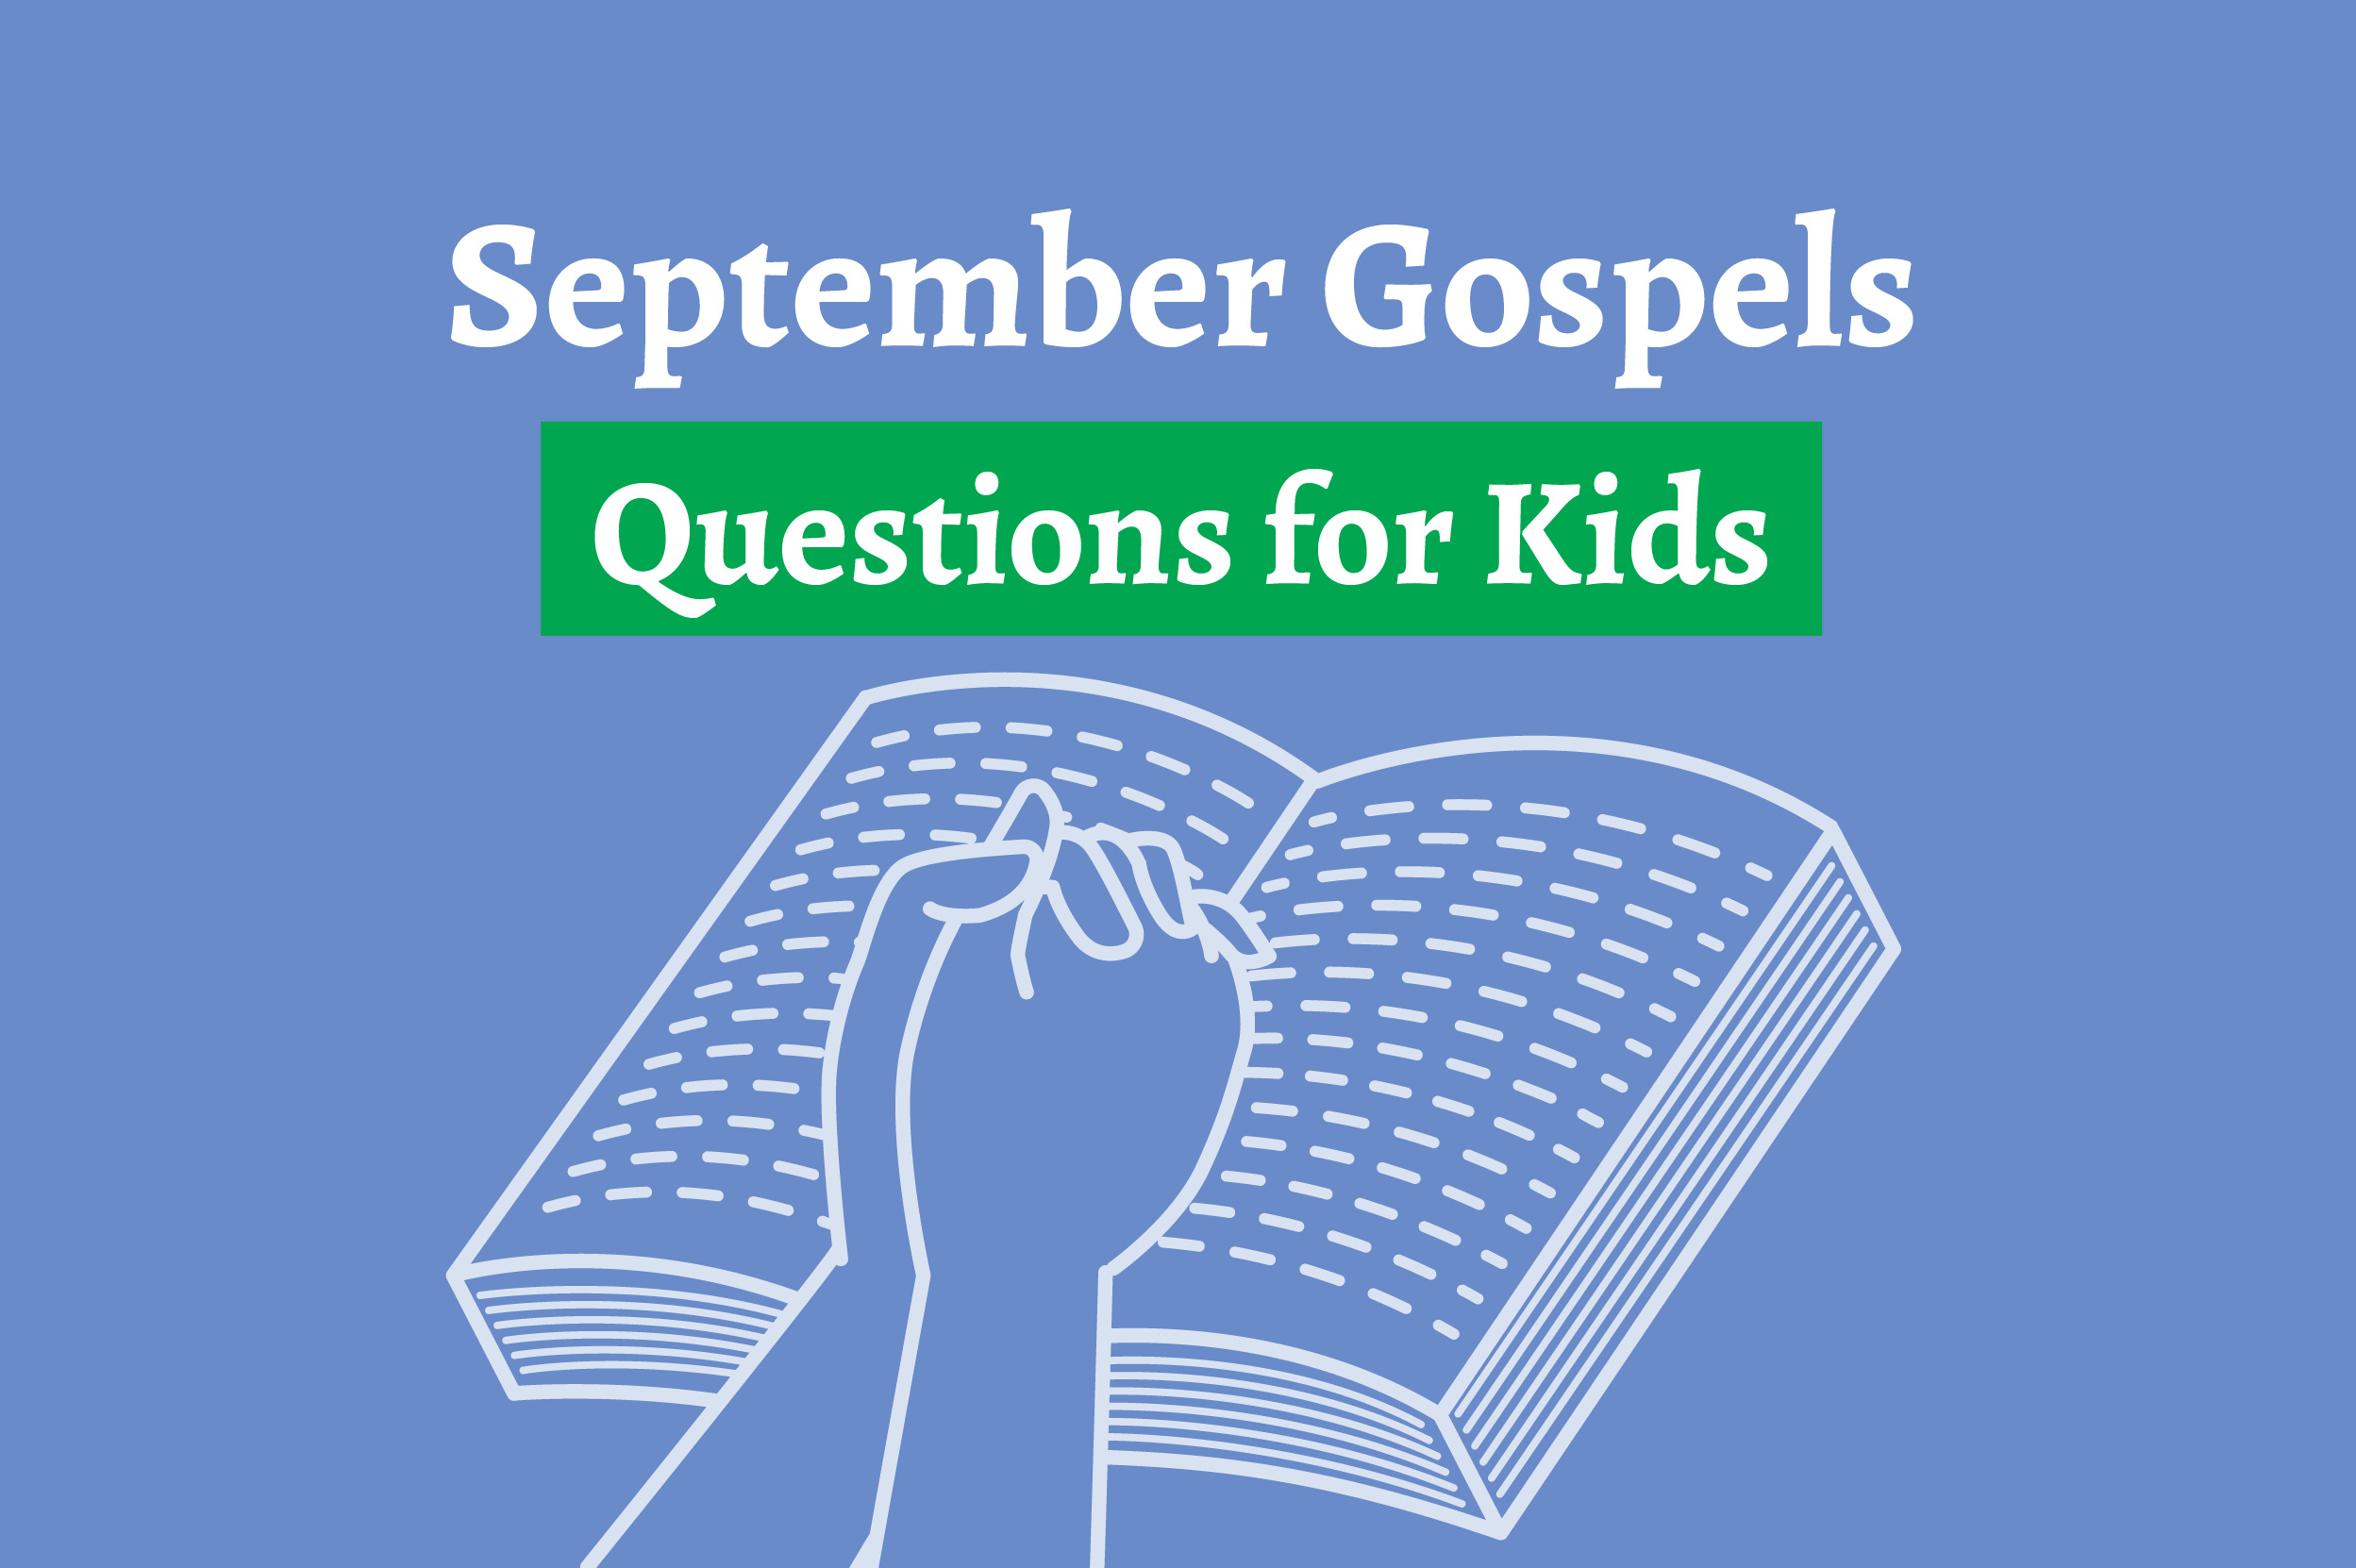 September Gospels: Questions to ask your kids